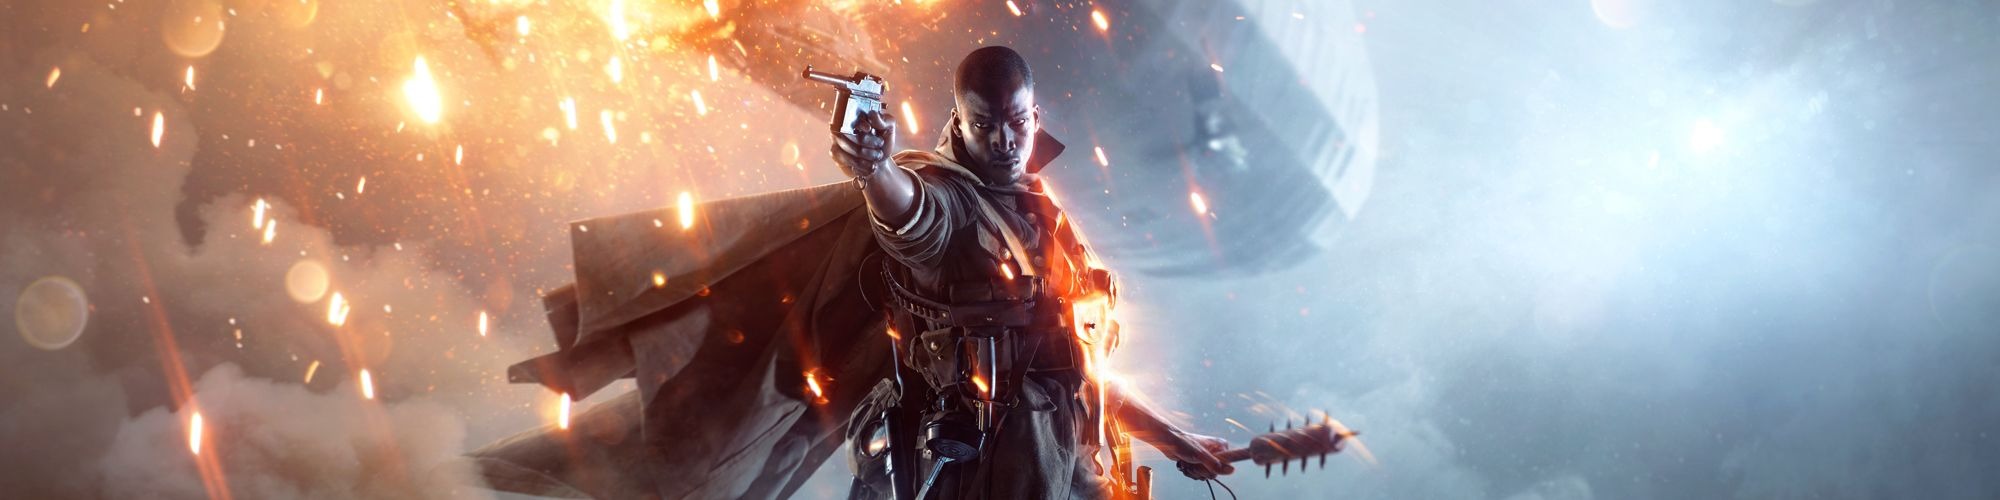 Battlefield 1 technical specifications for laptop